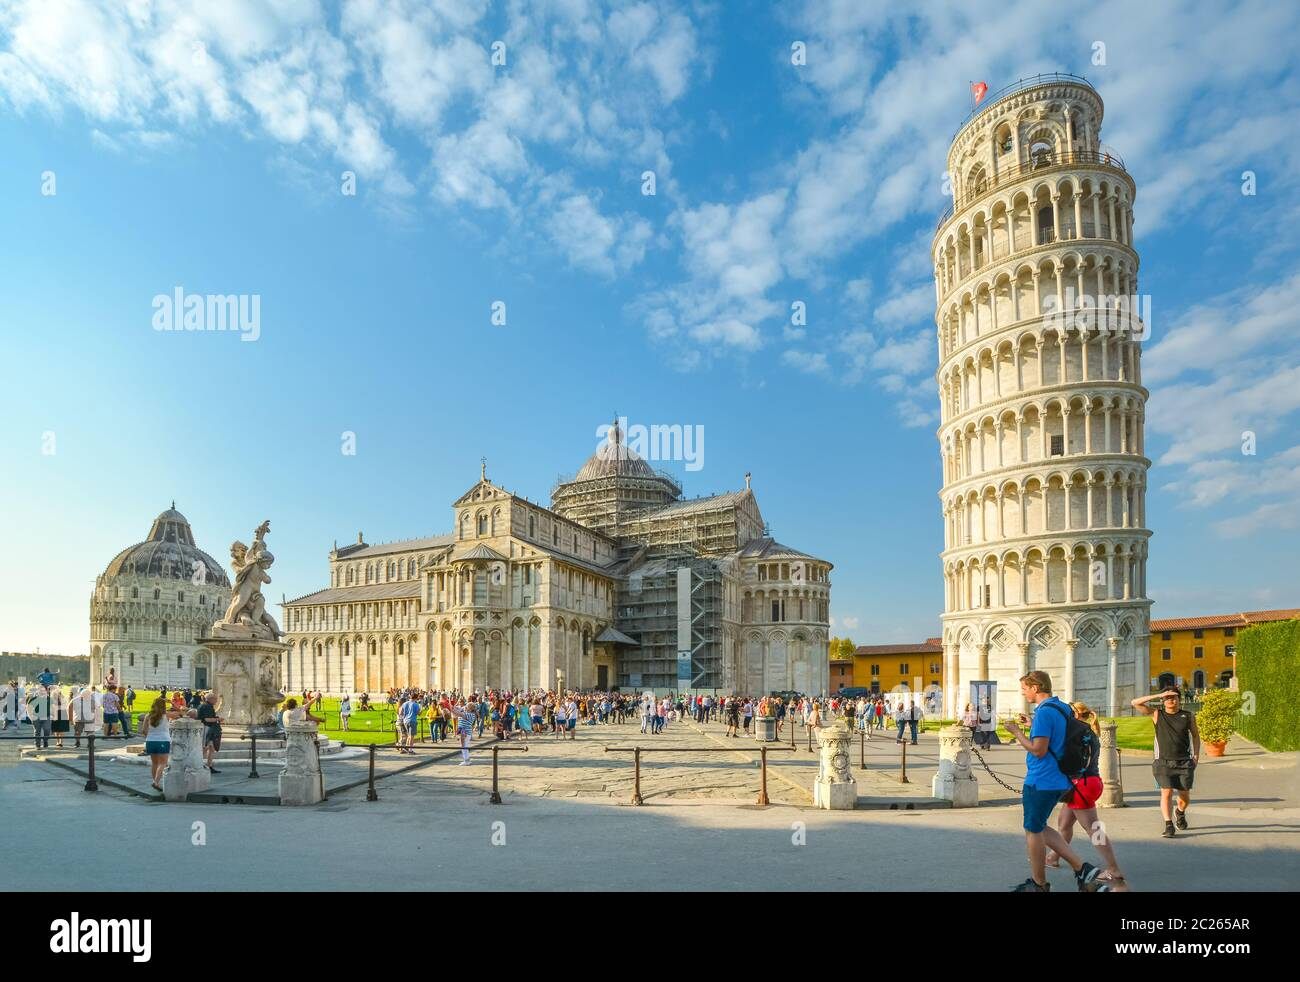 The Field of Miracles with it's Baptistery, Duomo cathedral and the Leaning Tower in the Tuscan city of Pisa, Italy. Stock Photo